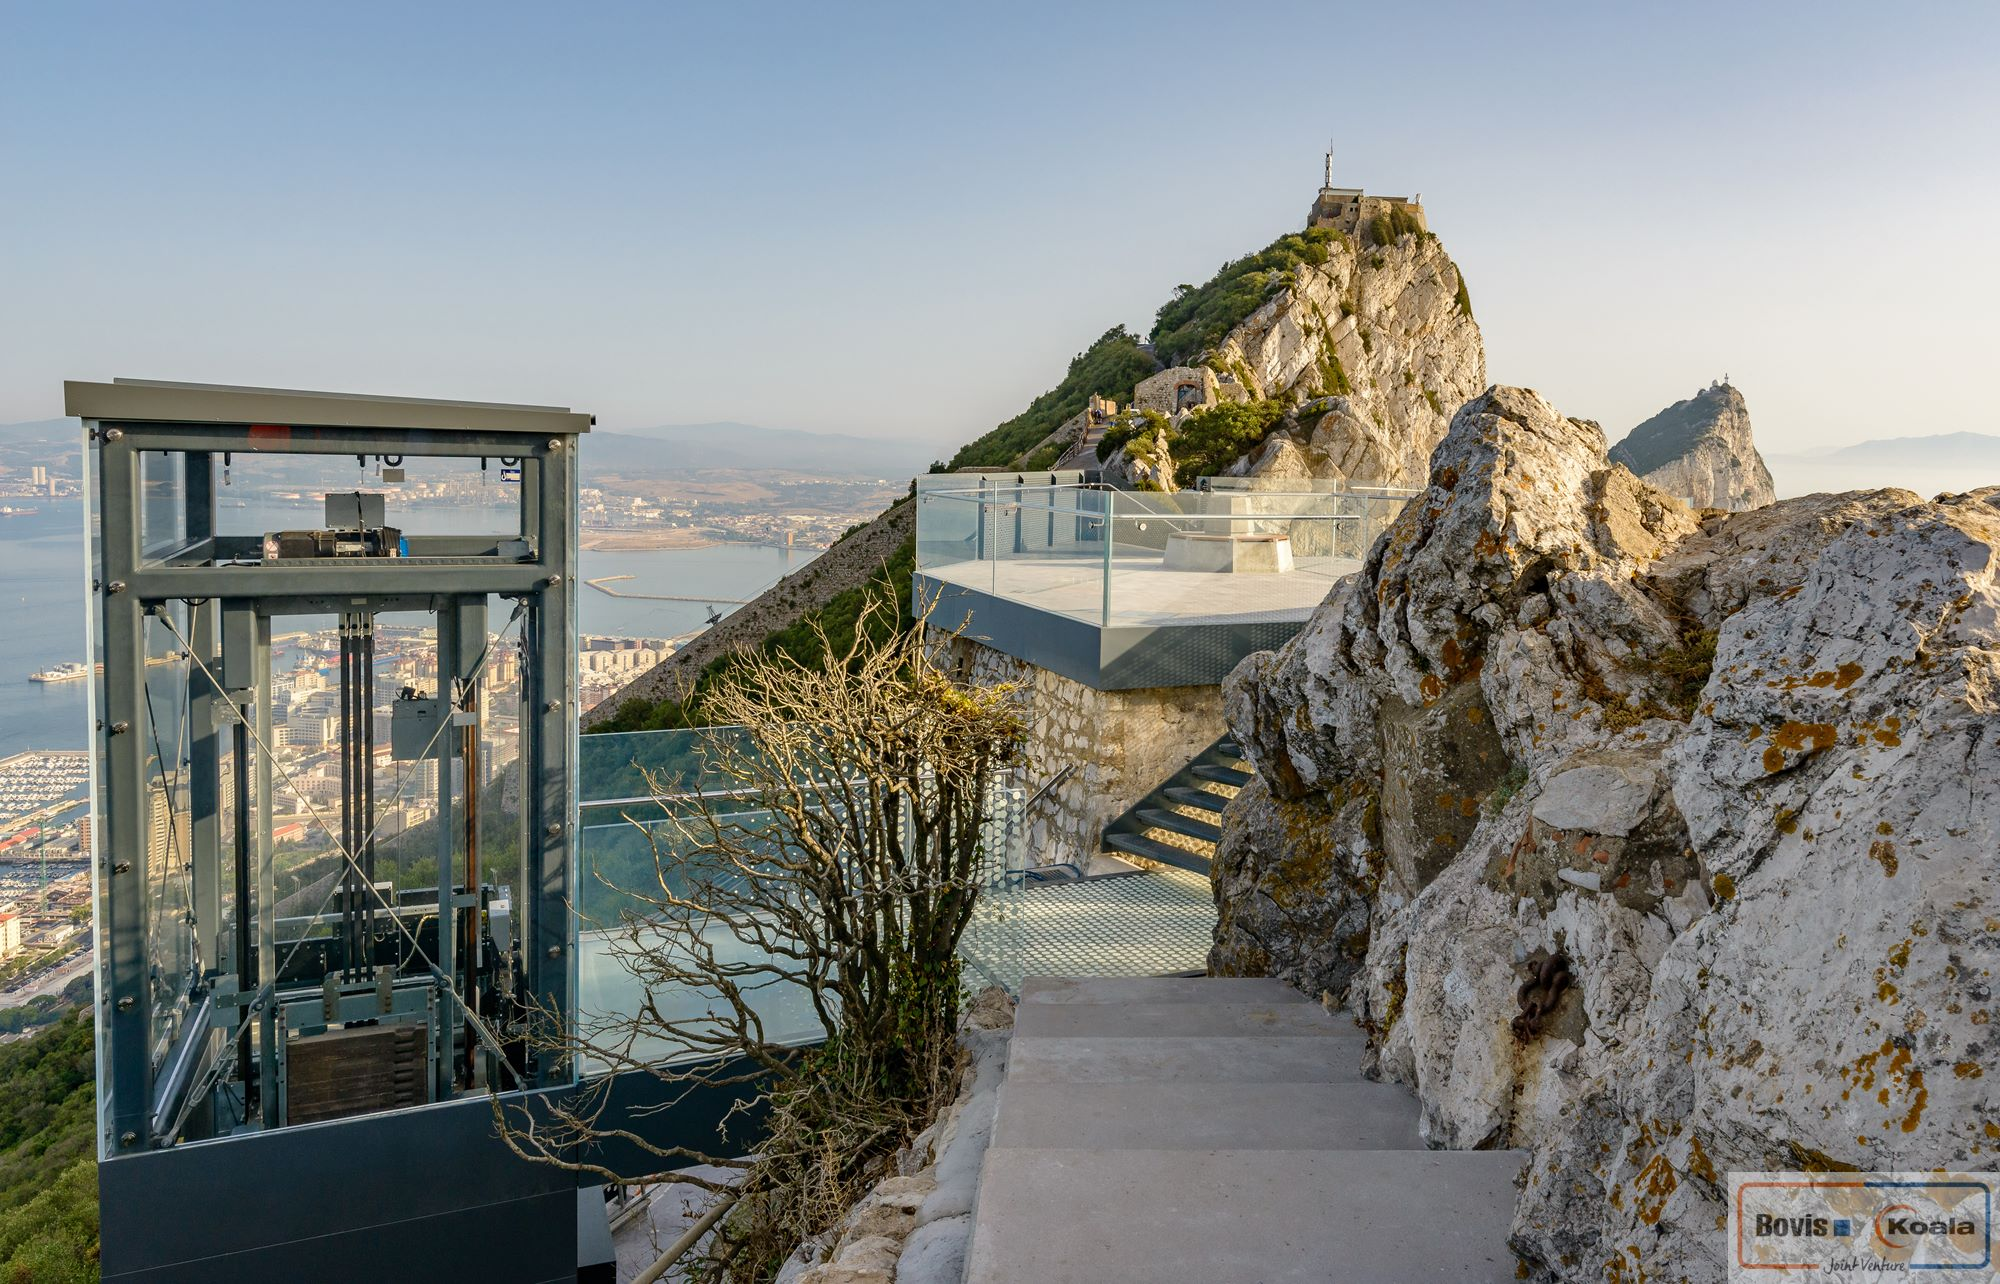 Bovis Koala Skywalk Gibraltar 8